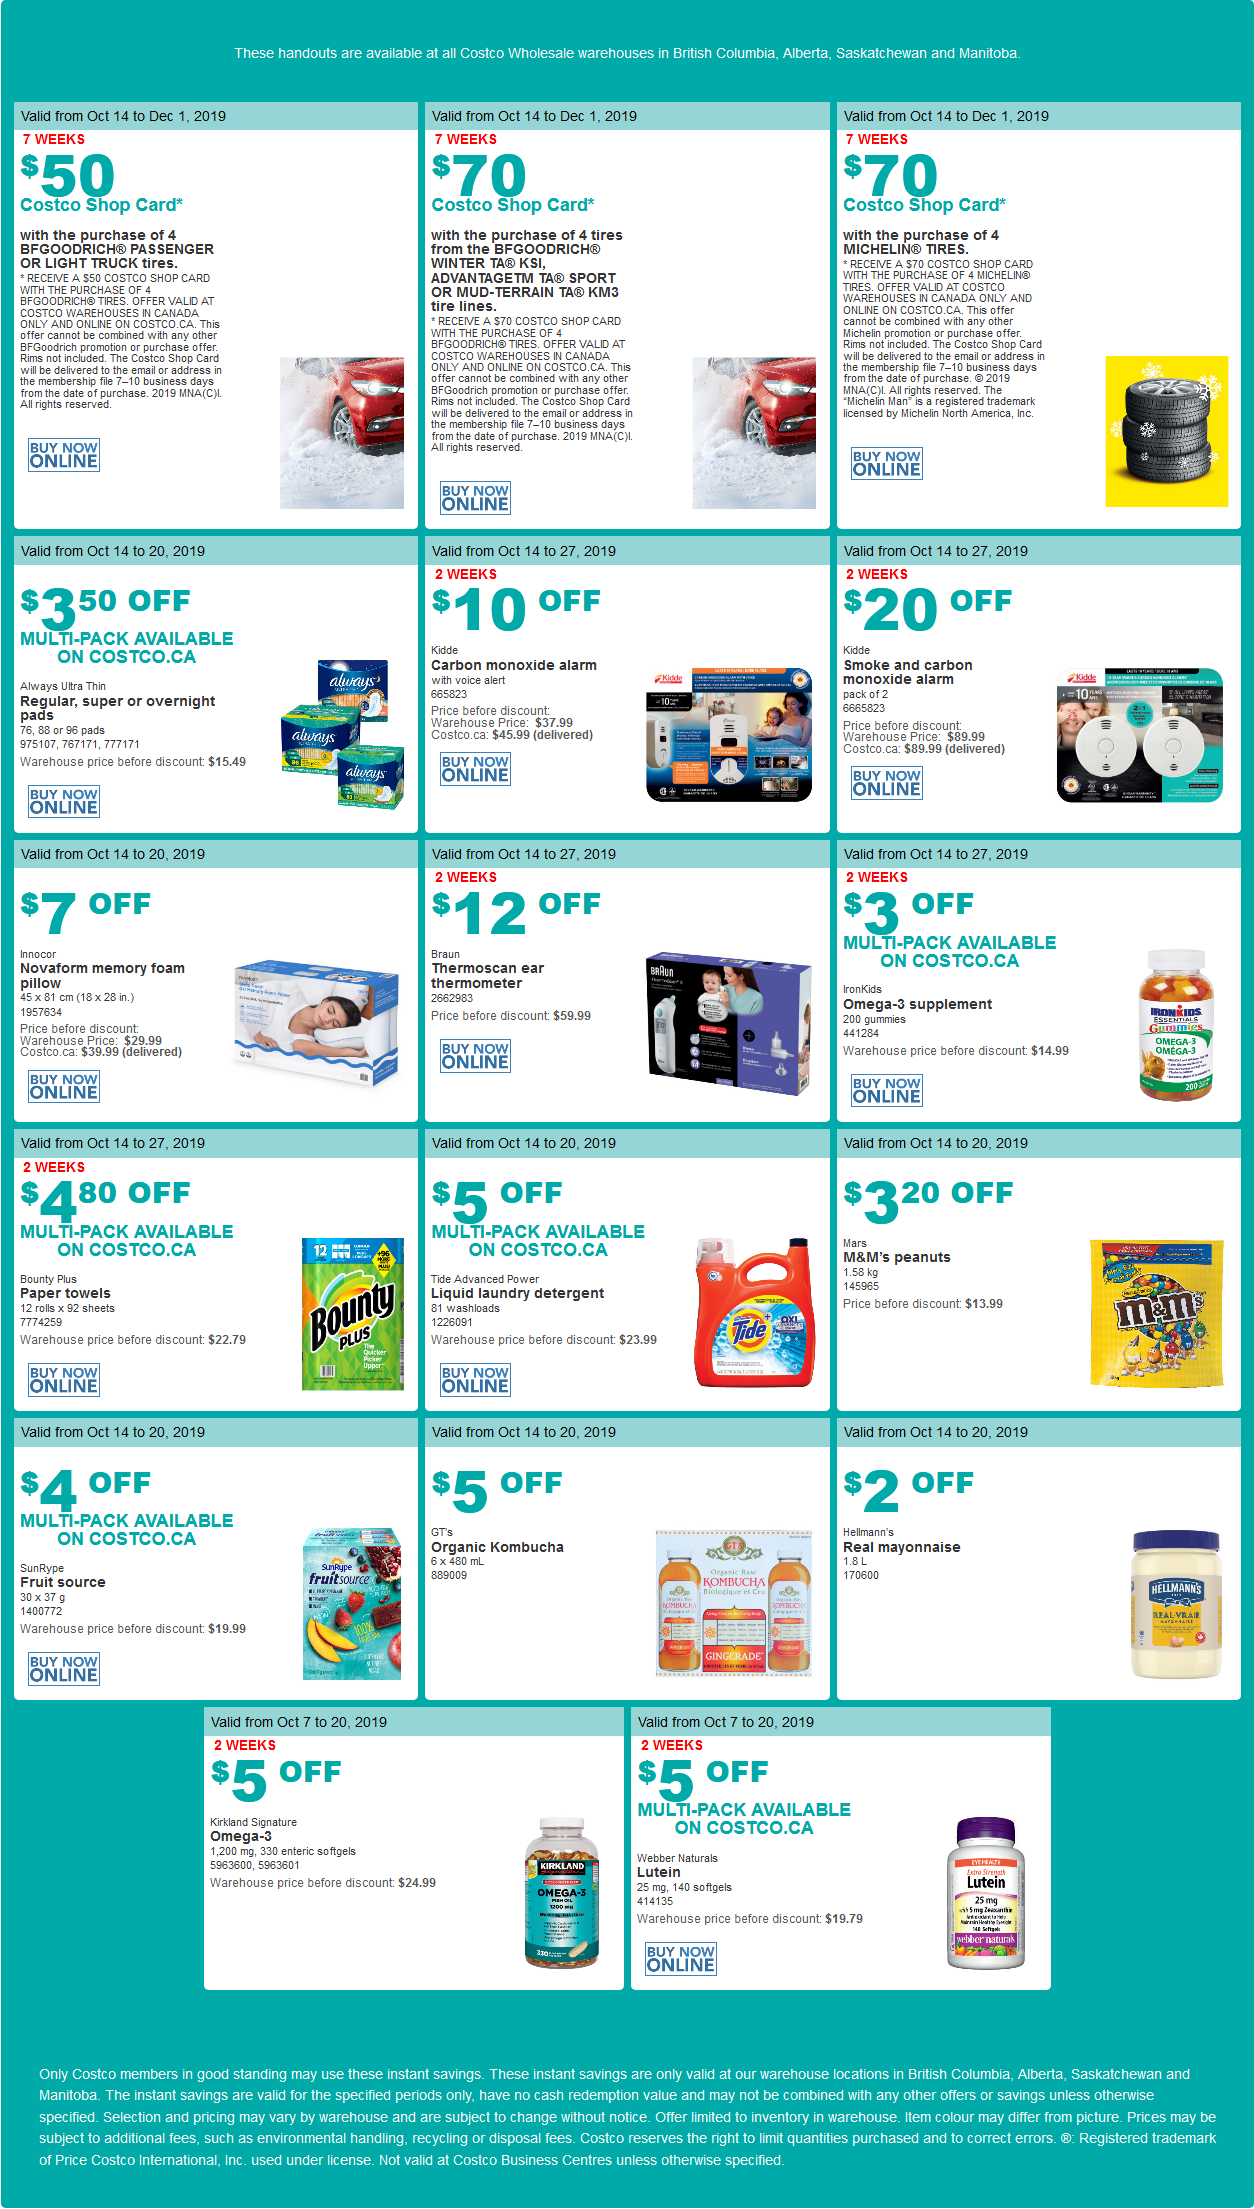 Costco Flyer for Oct 14-20, 2019 for BC, AB, SK, MB